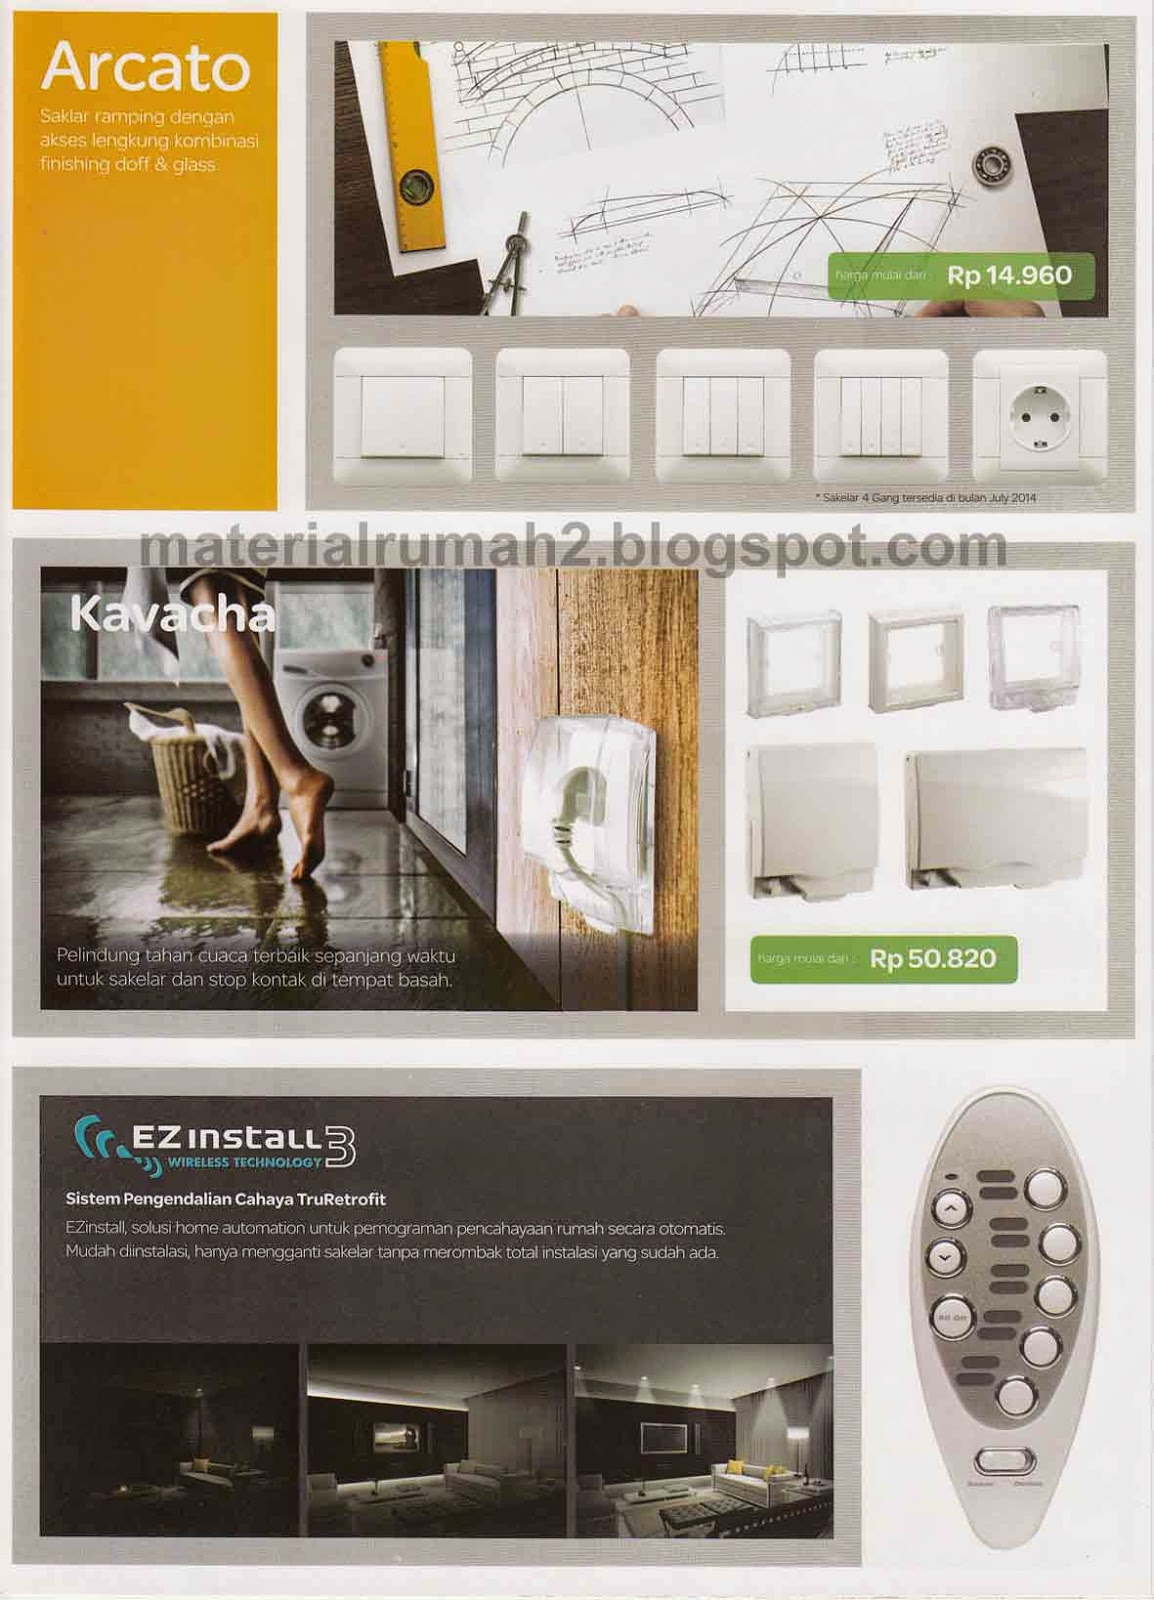 katalog produk schneider electric rumah material. Black Bedroom Furniture Sets. Home Design Ideas